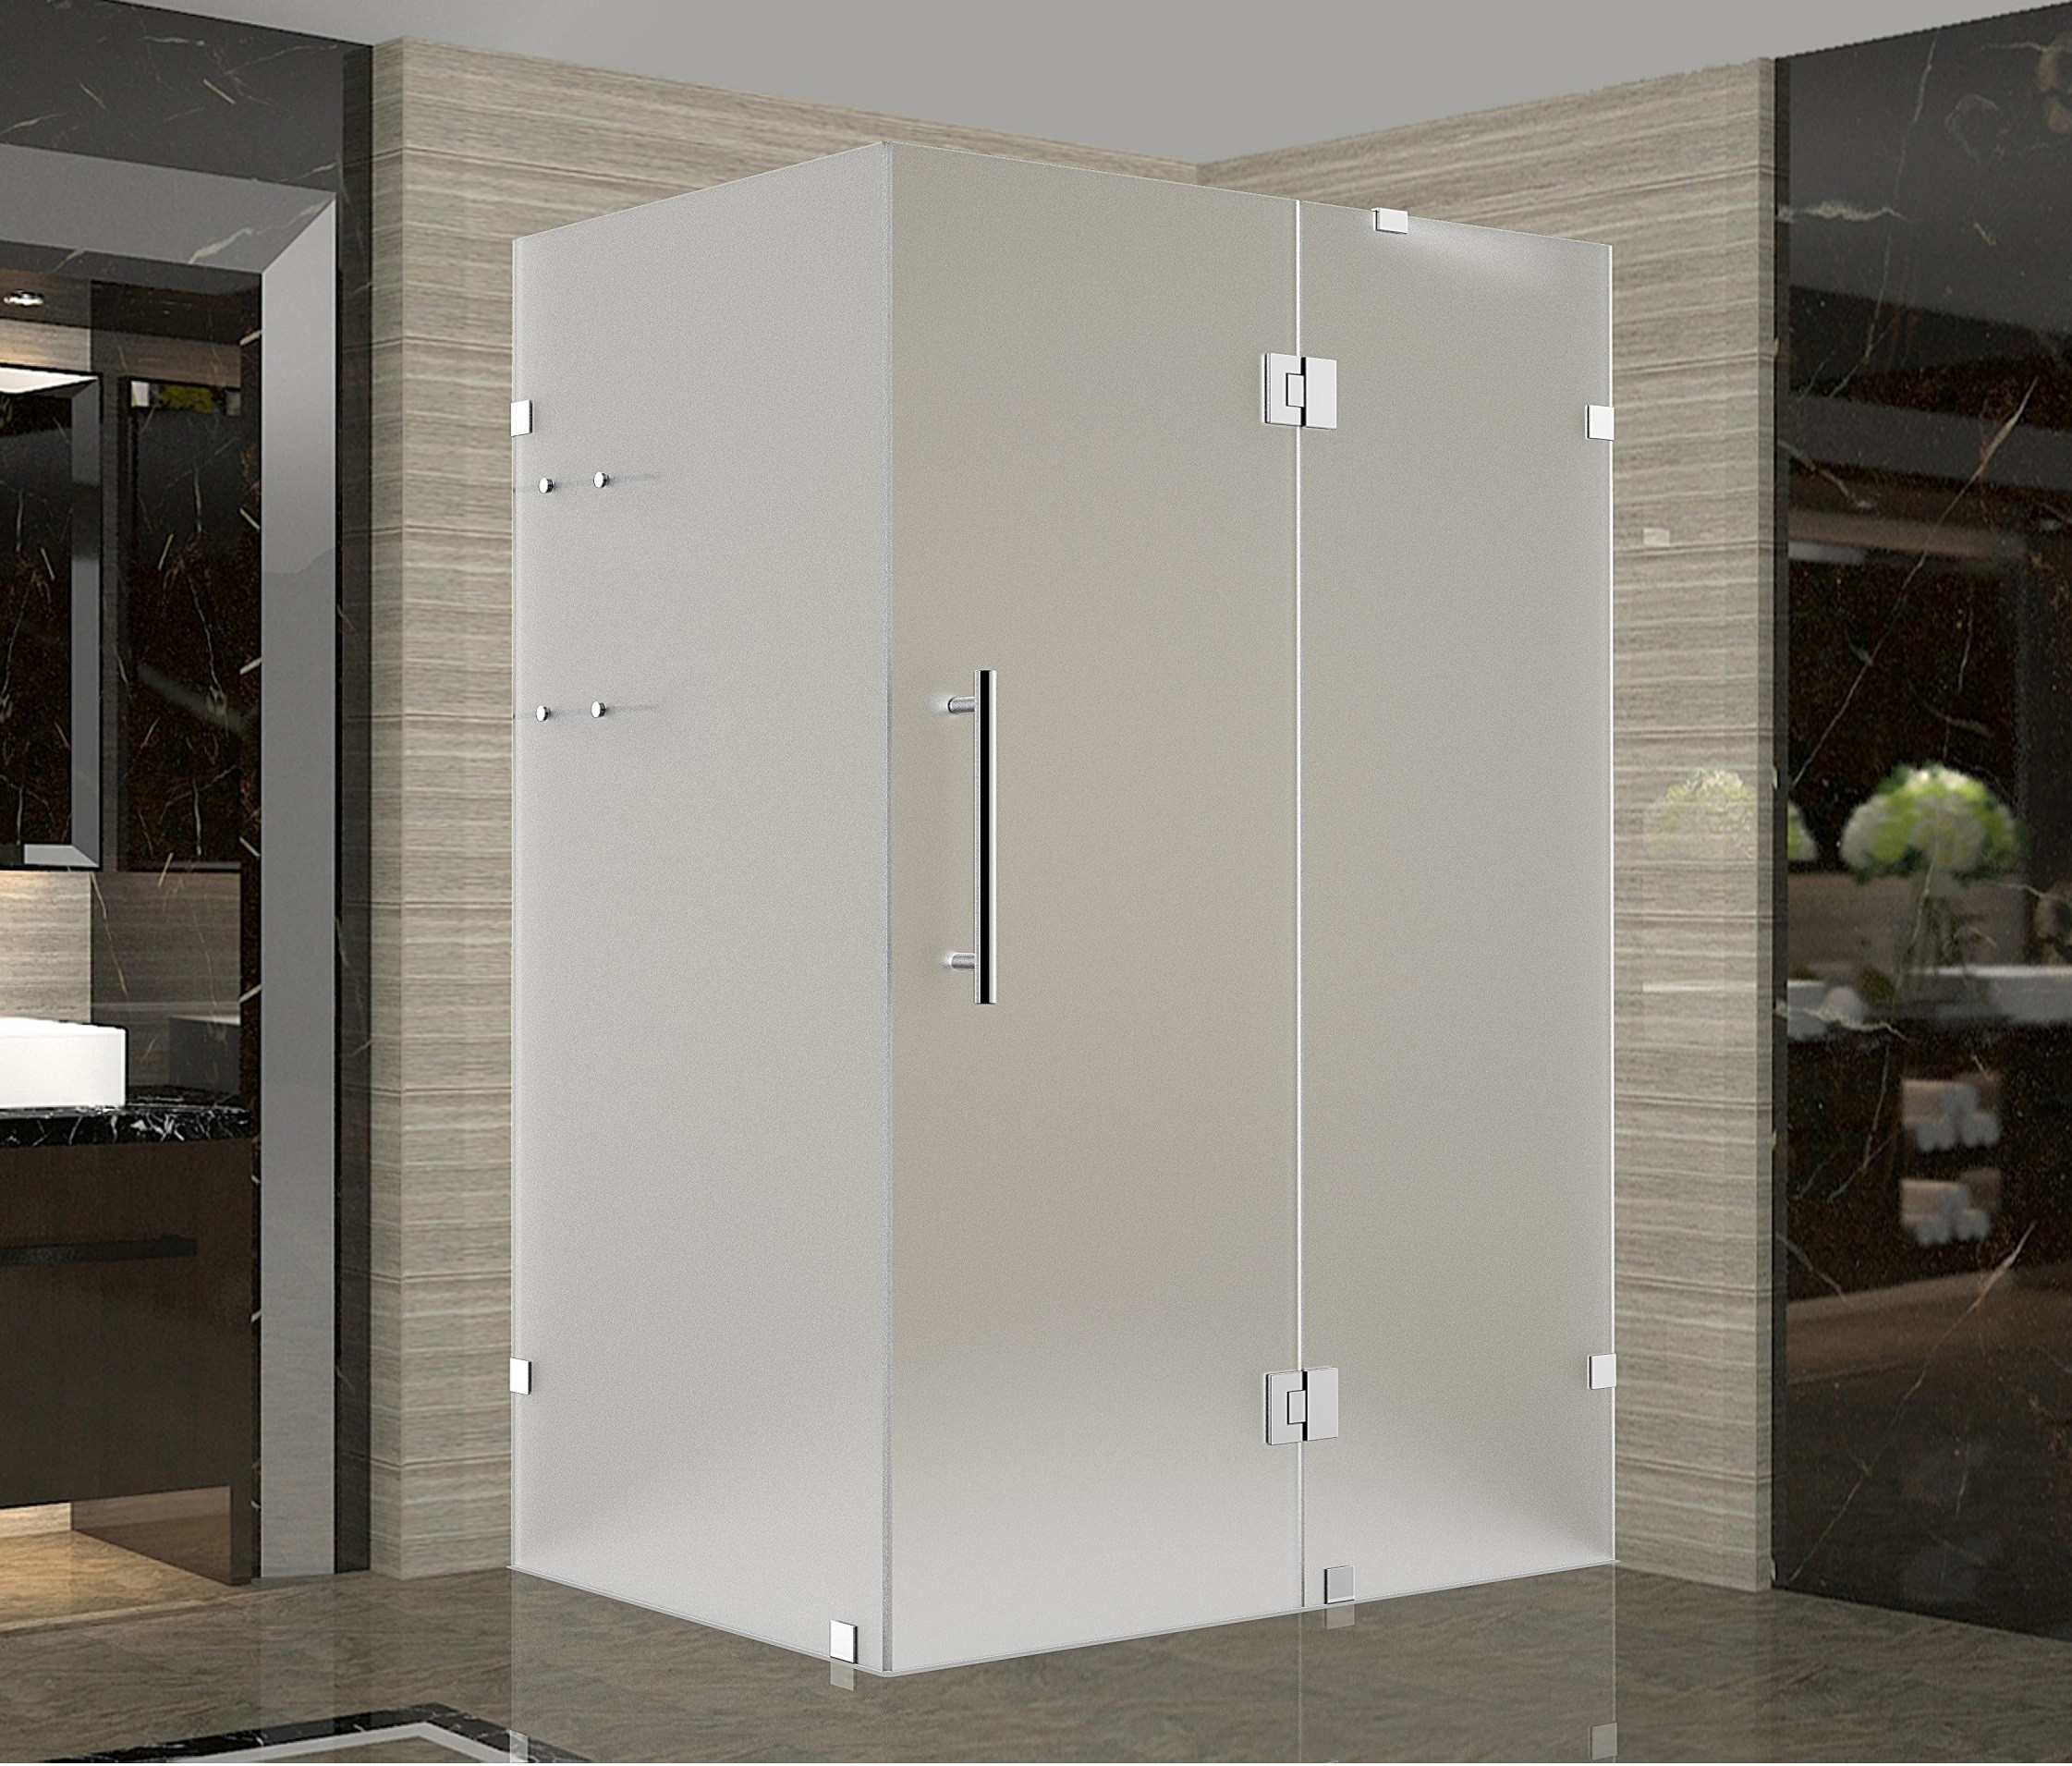 Aston Global SEN992F-CH-4234-10 Chrome Completely Frameless Frosted Shower Enclosure with Shelves